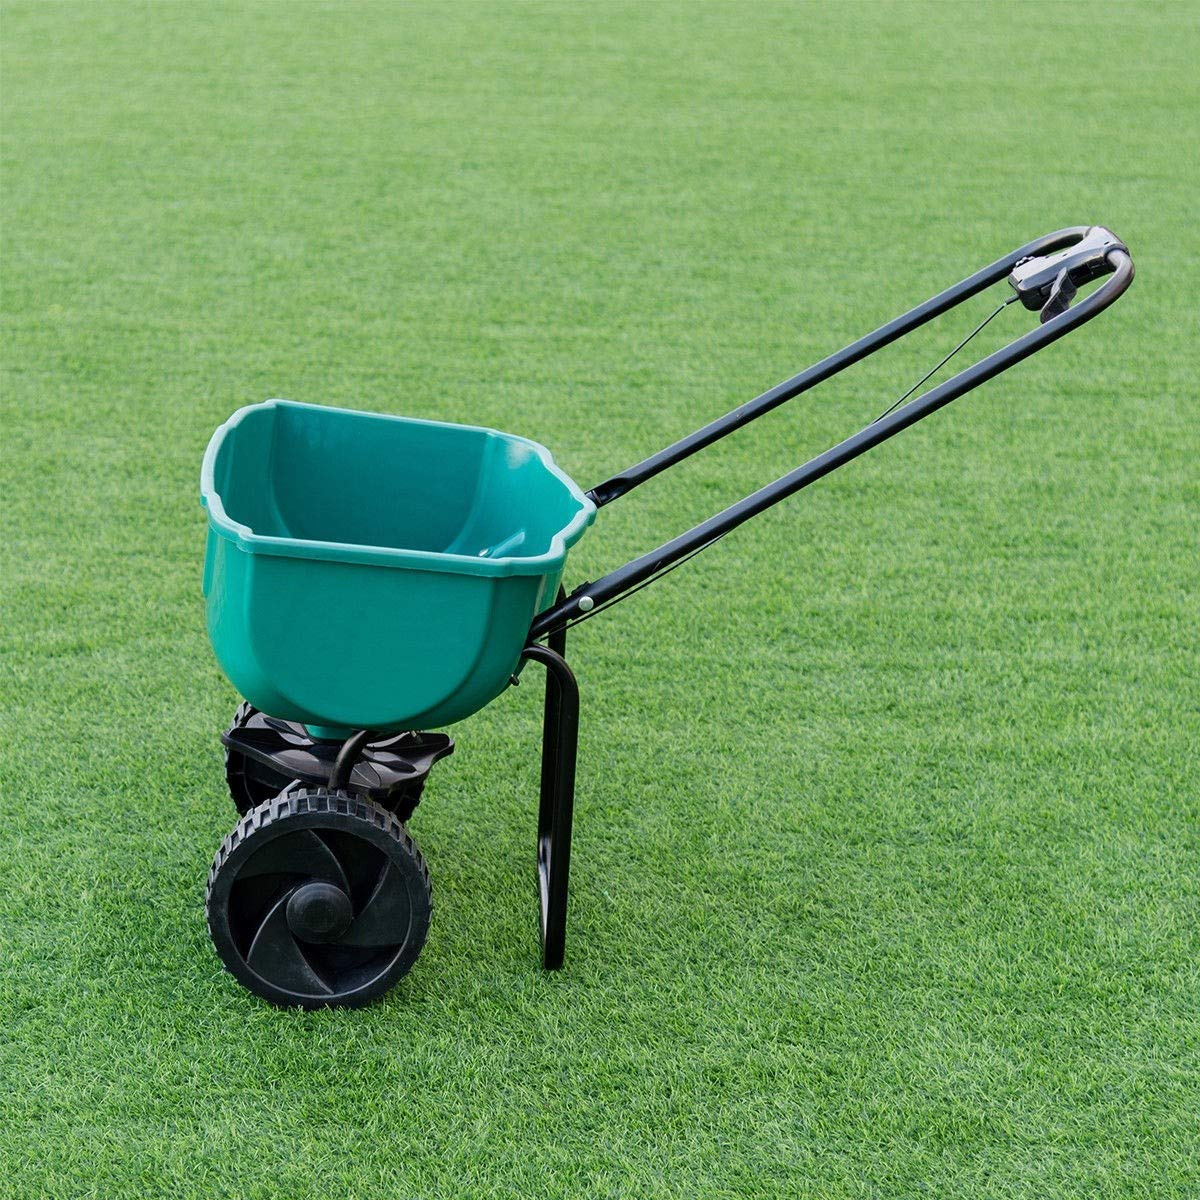 Garden Seeder Push Walk Behind Fertilizer Broadcast Spreader